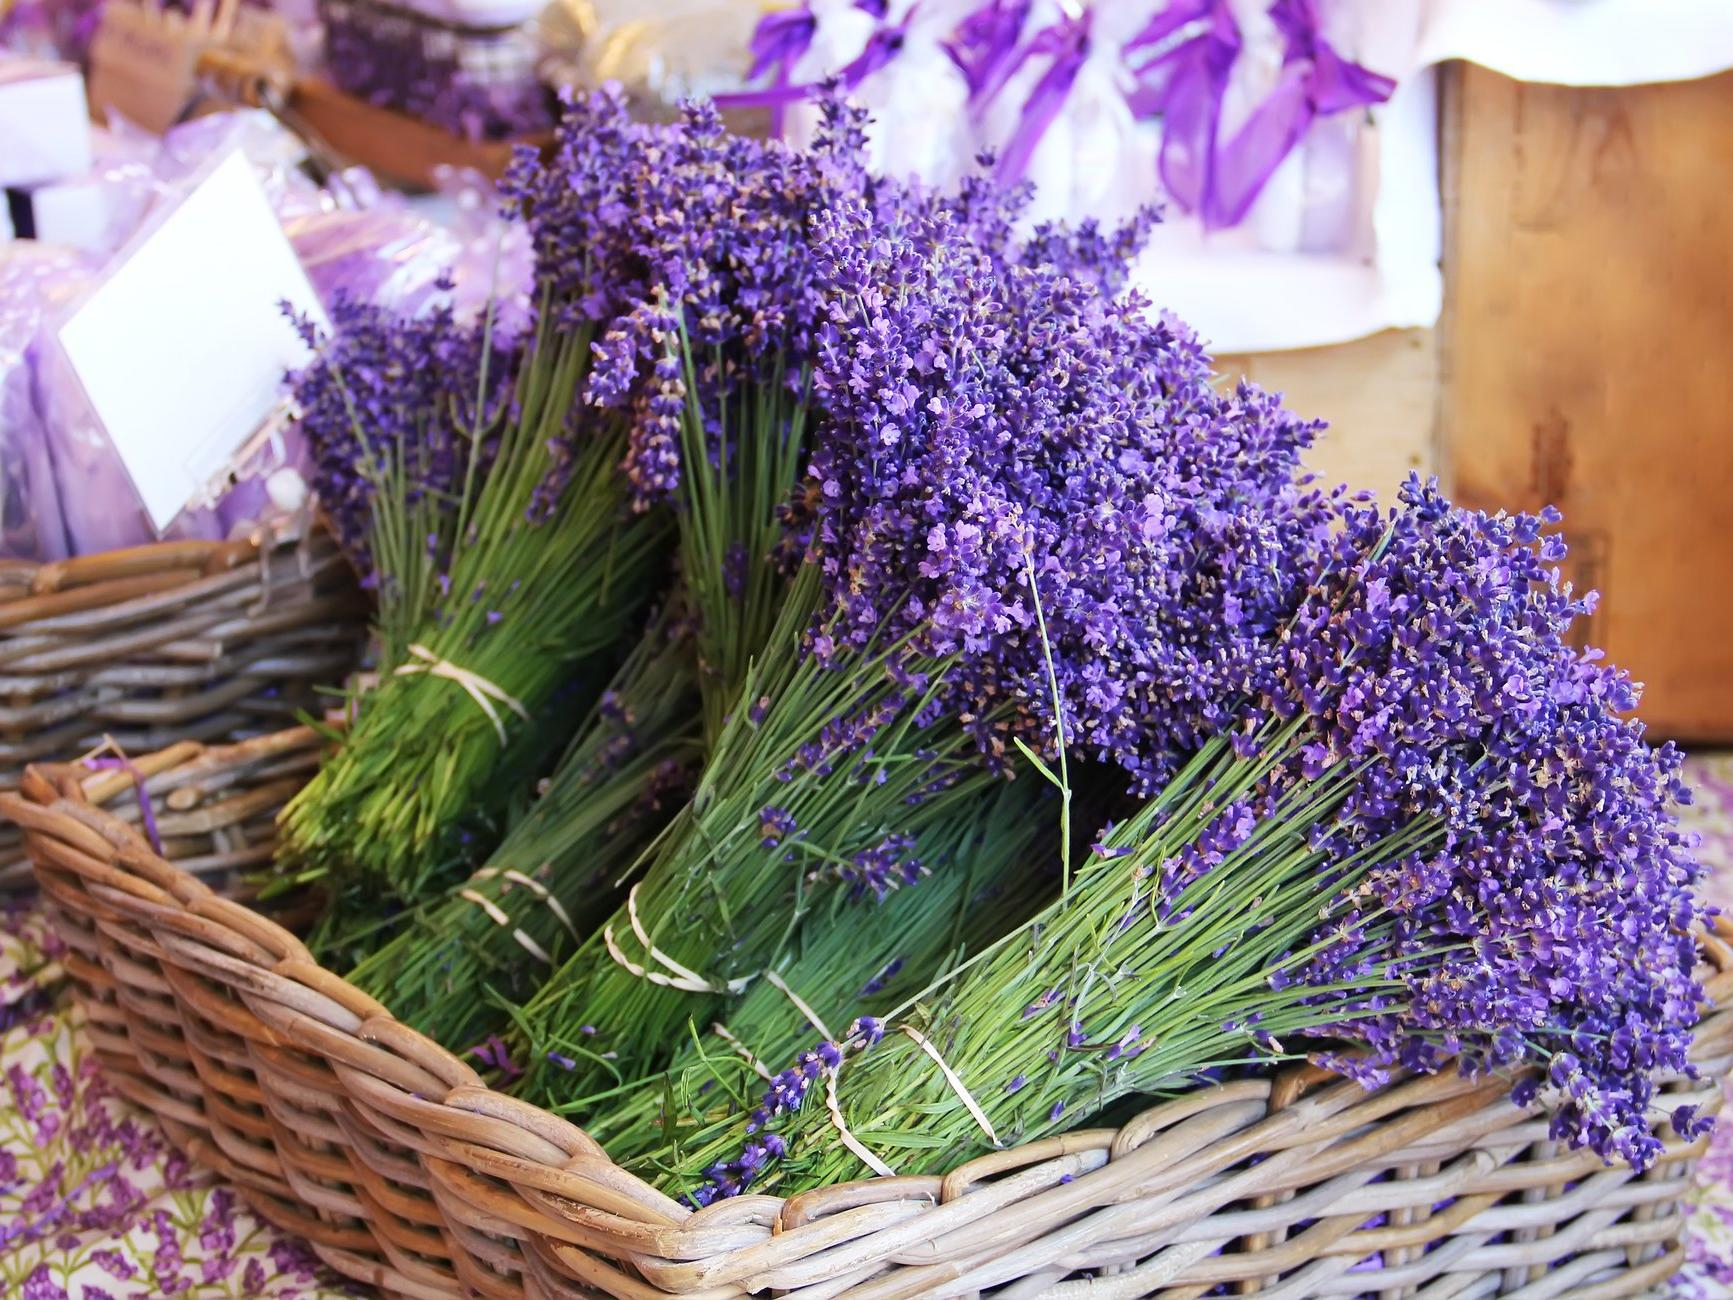 Lavendar bunches in a straw bucket